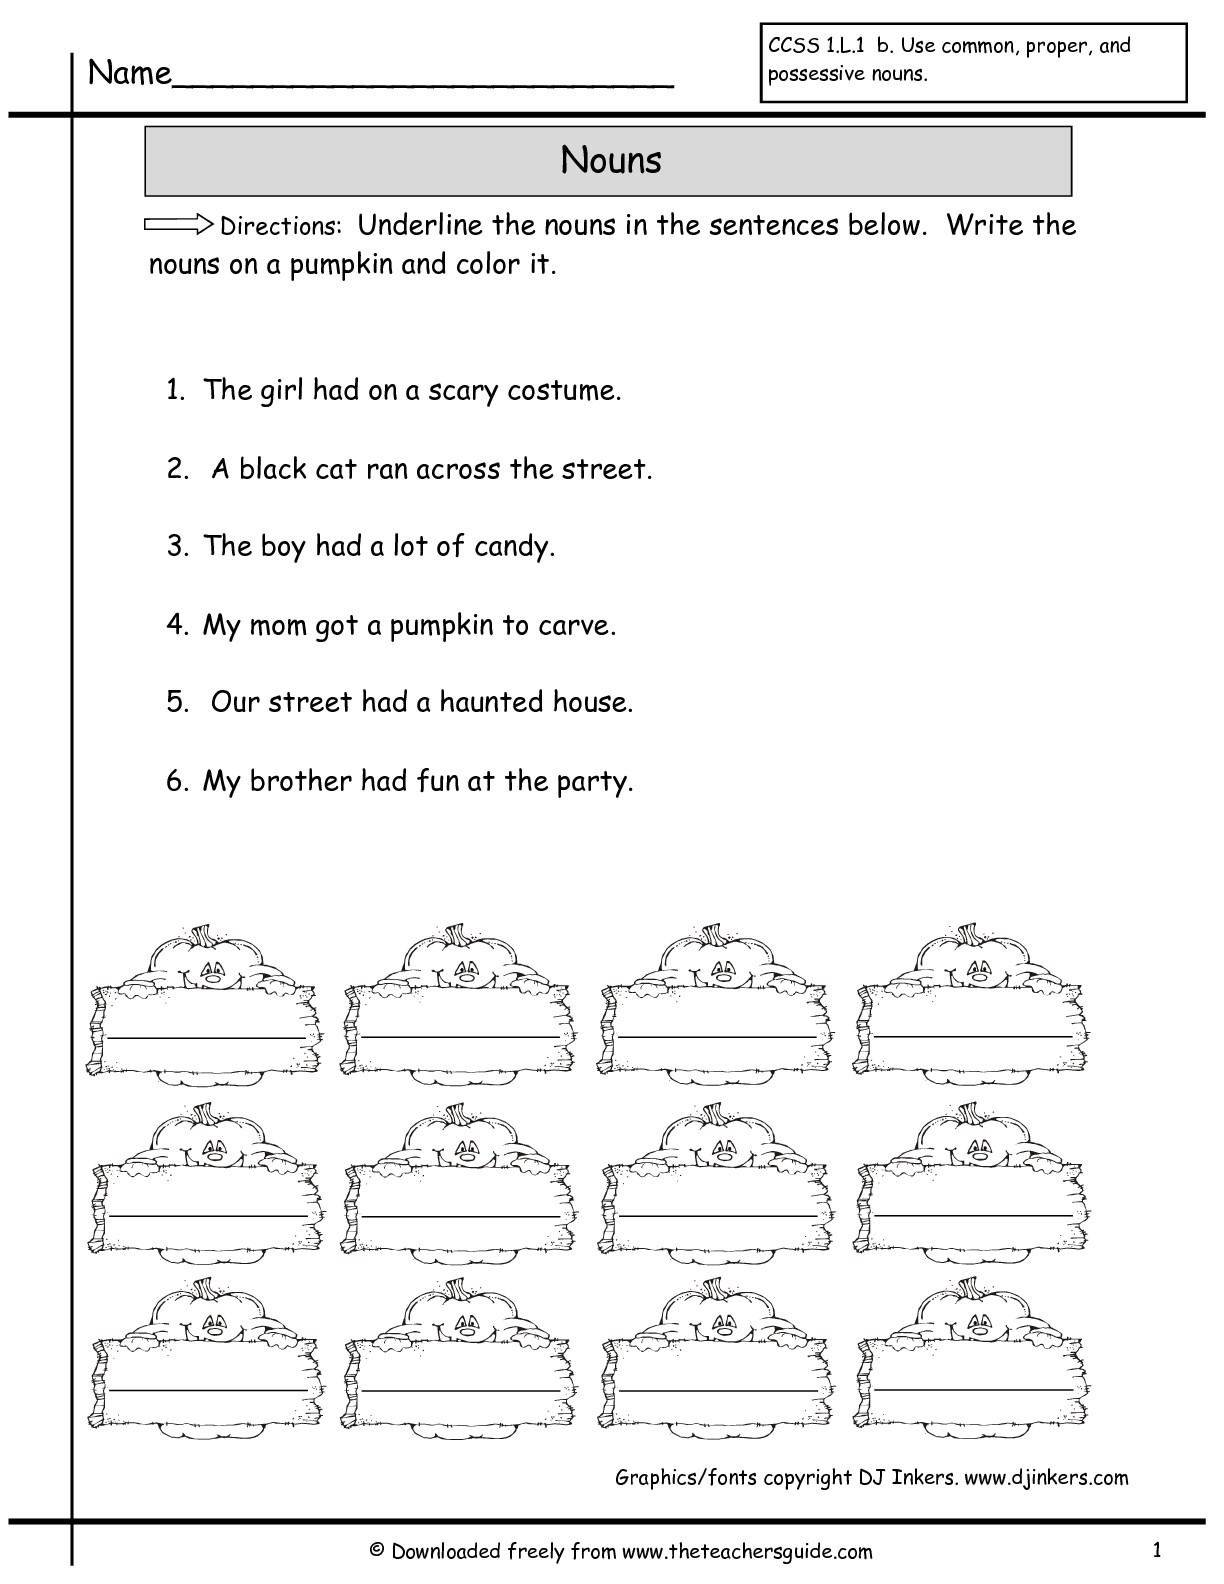 Noun Worksheets For Second Grade Pumpkin. Noun. Best Free